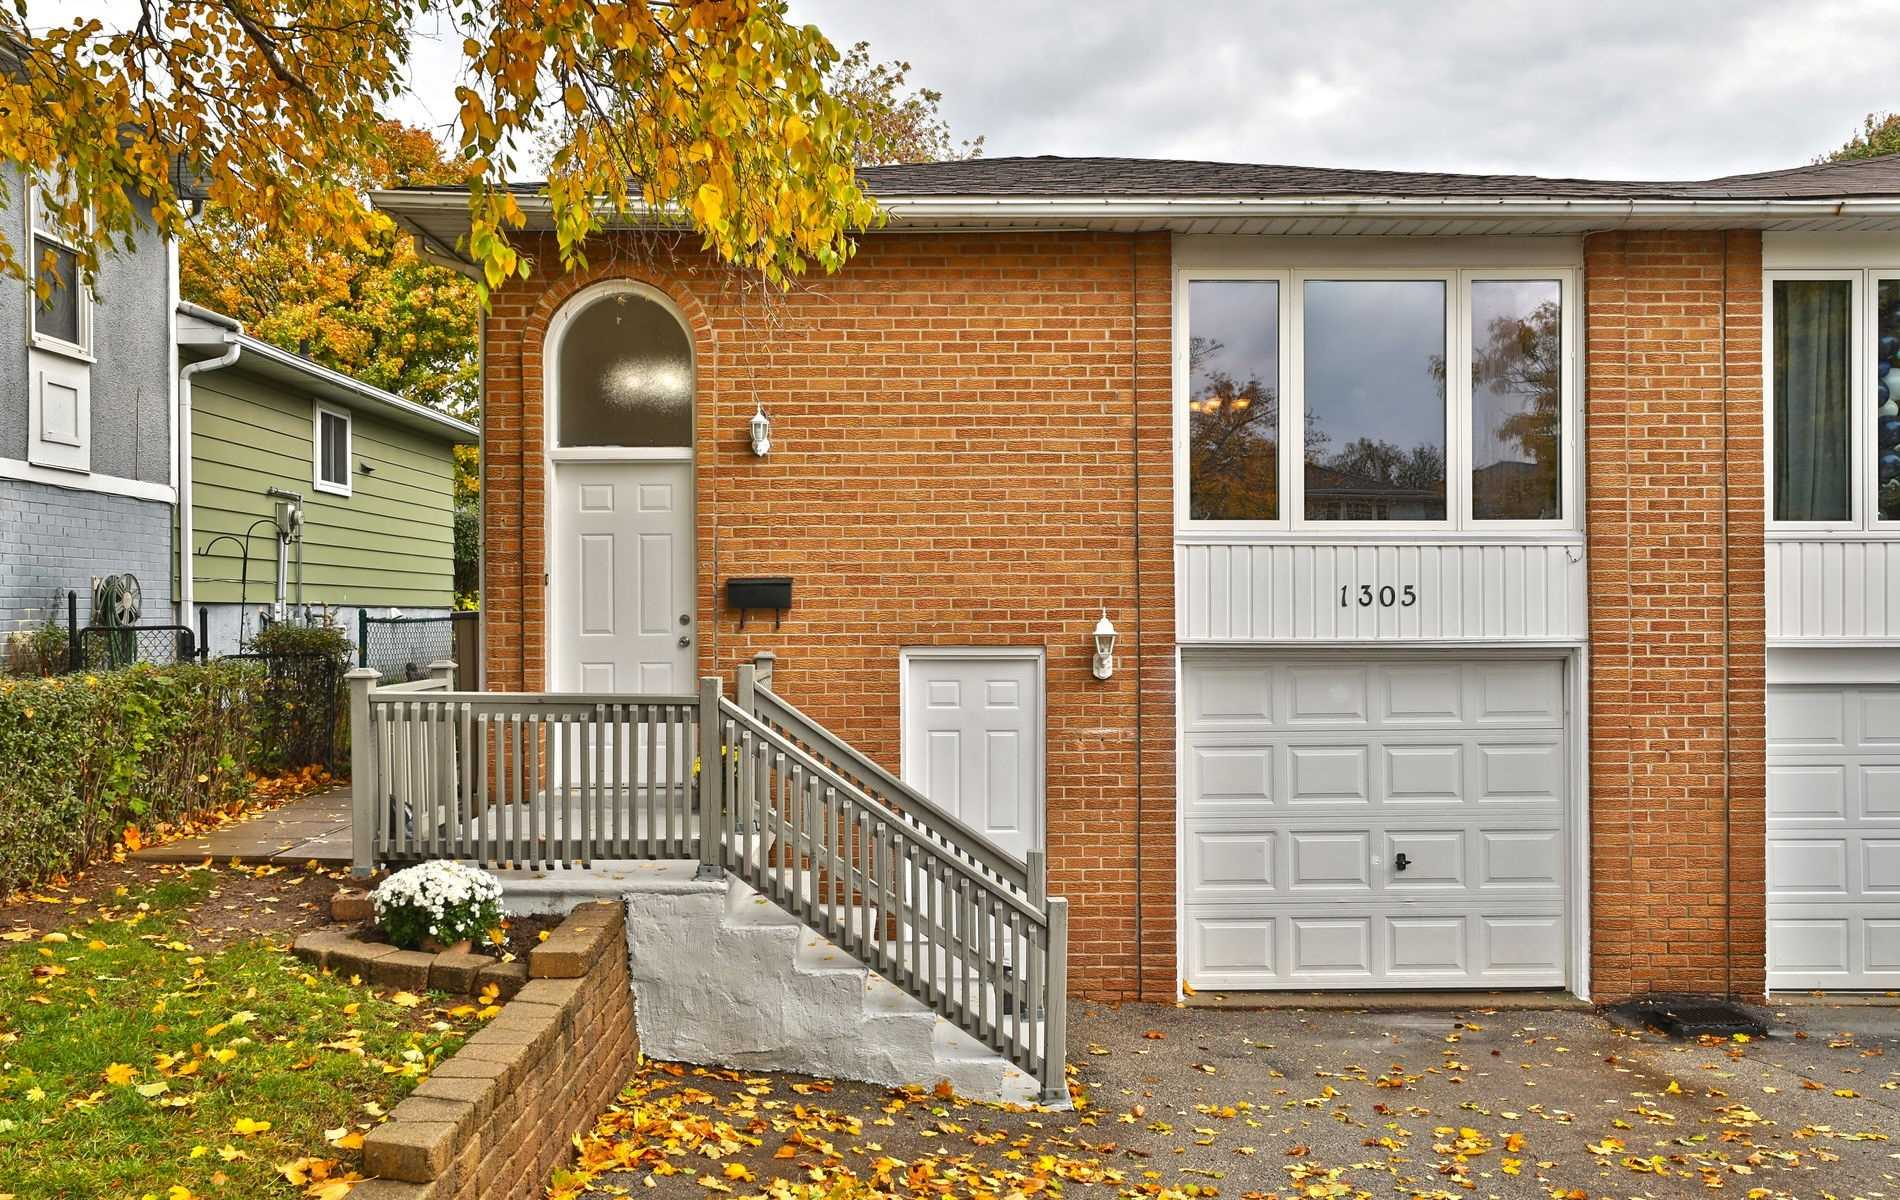 For Sale: 1305 Consort Crescent, Burlington, ON | 3 Bed, 2 Bath Townhouse for $729000.00. See 20 photos!